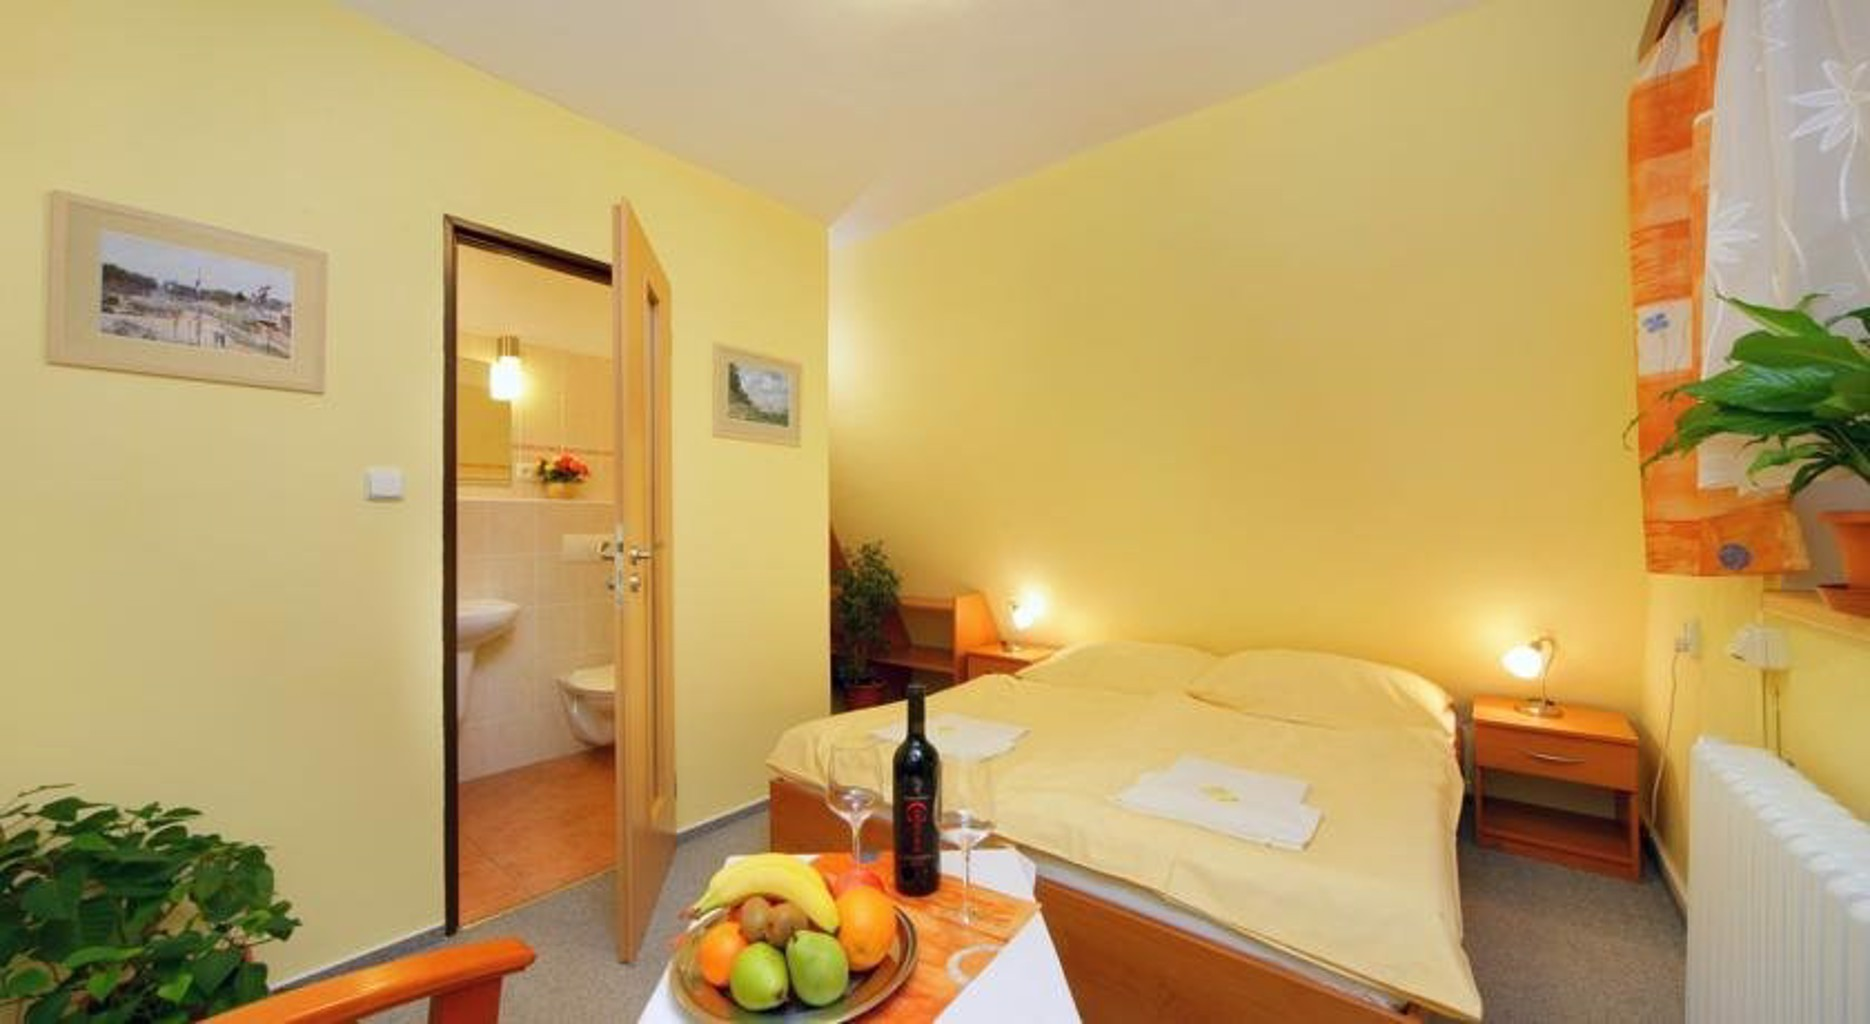 Gallery image of Hotel Stary Mlyn